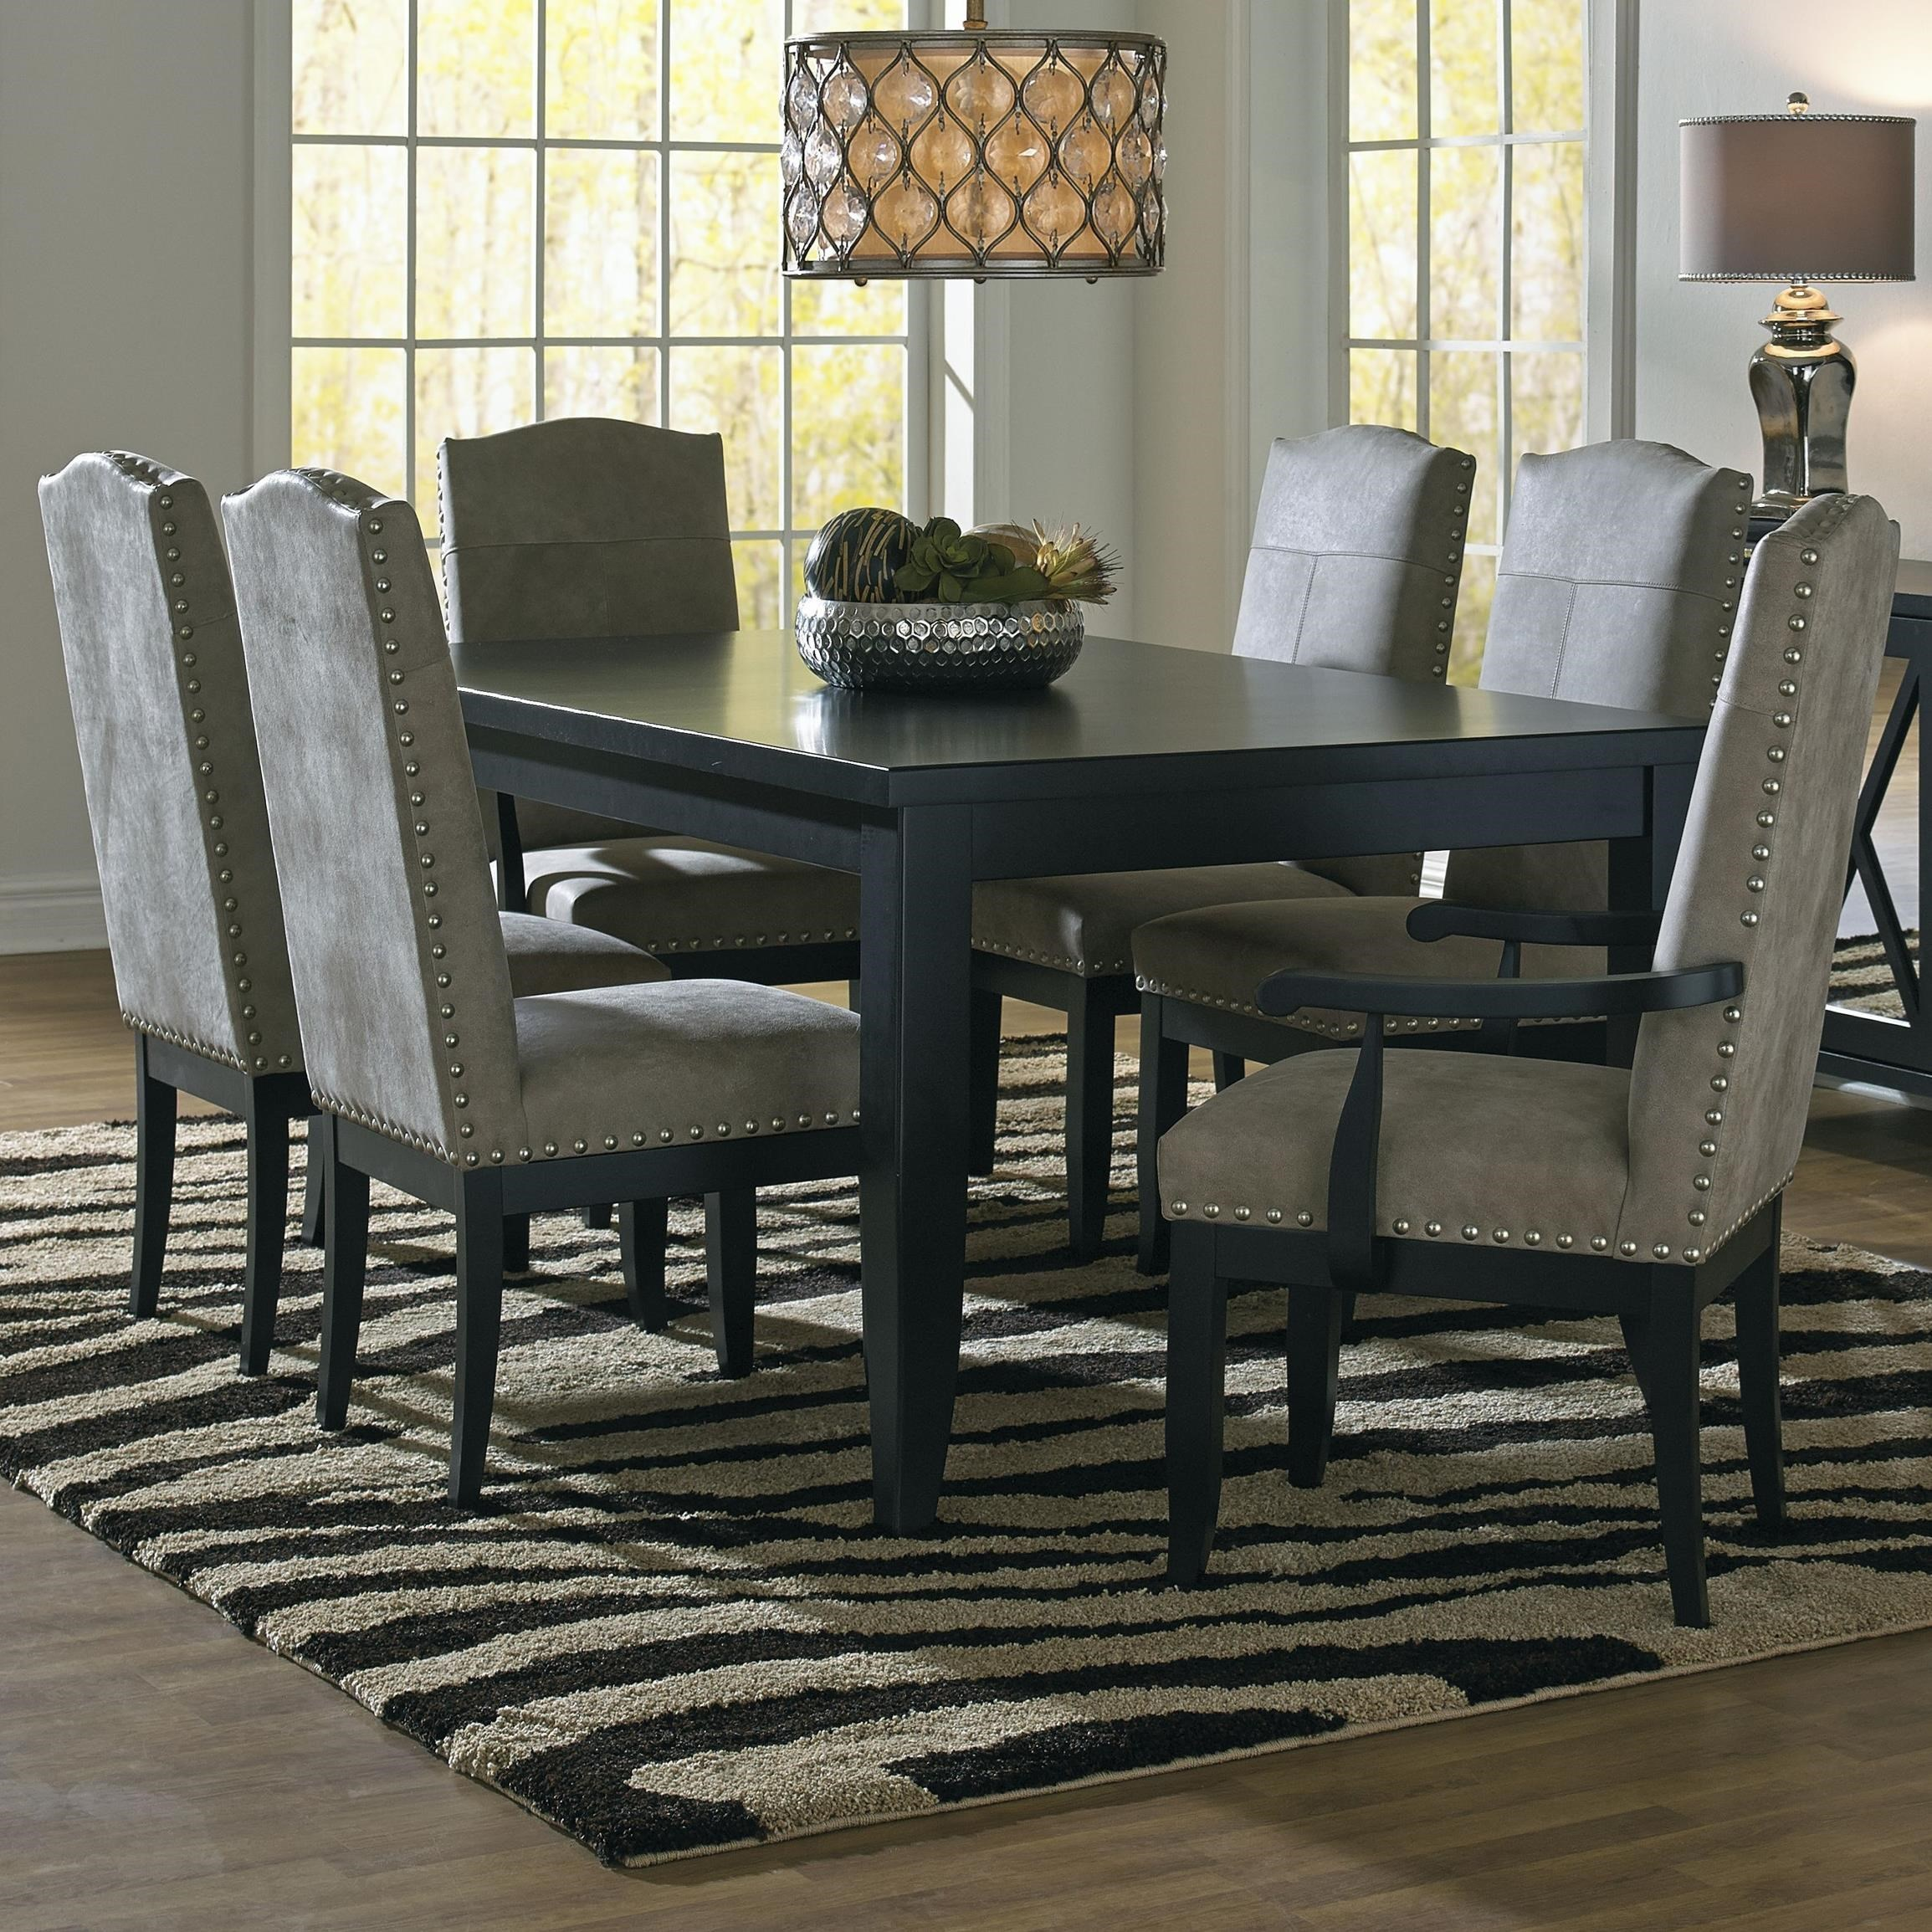 Canadel Custom DiningCustomizable Rectangular Dining Table Set ...